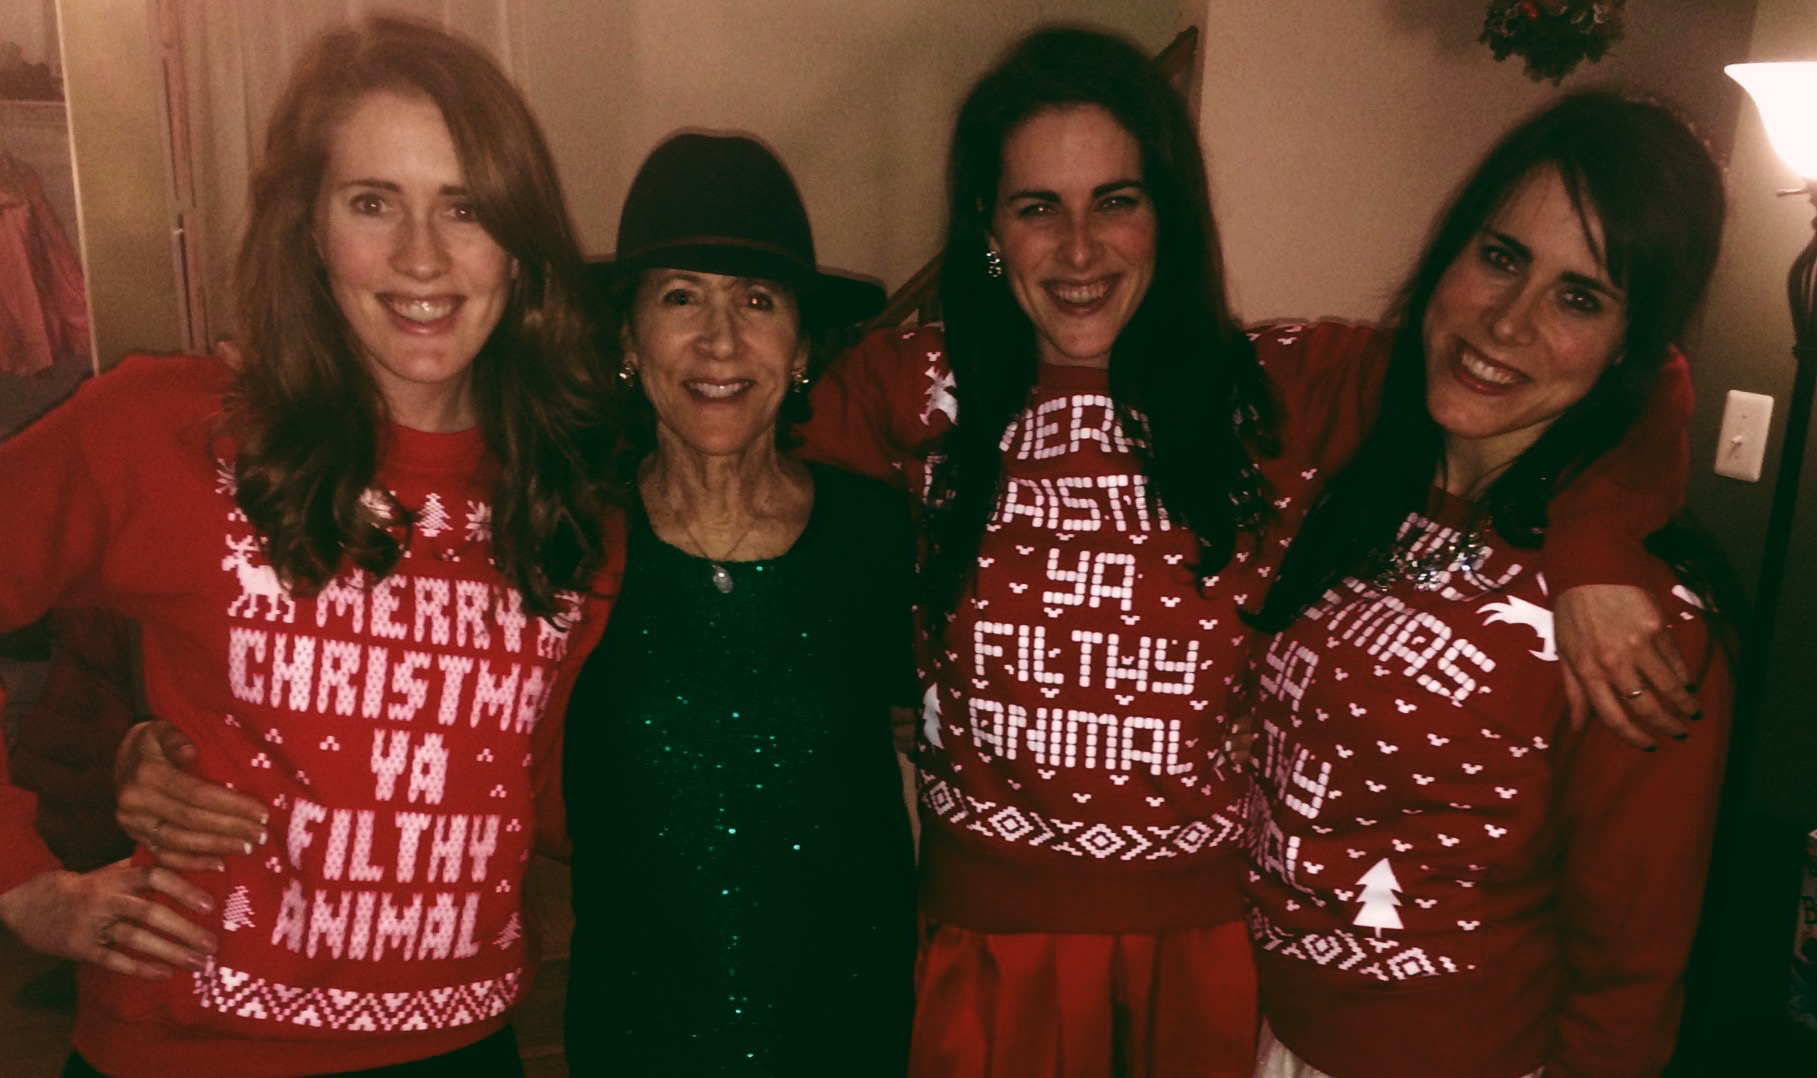 Christmas 2014, complete with matching Home Alone sweatshirts, courtesy of my sister.